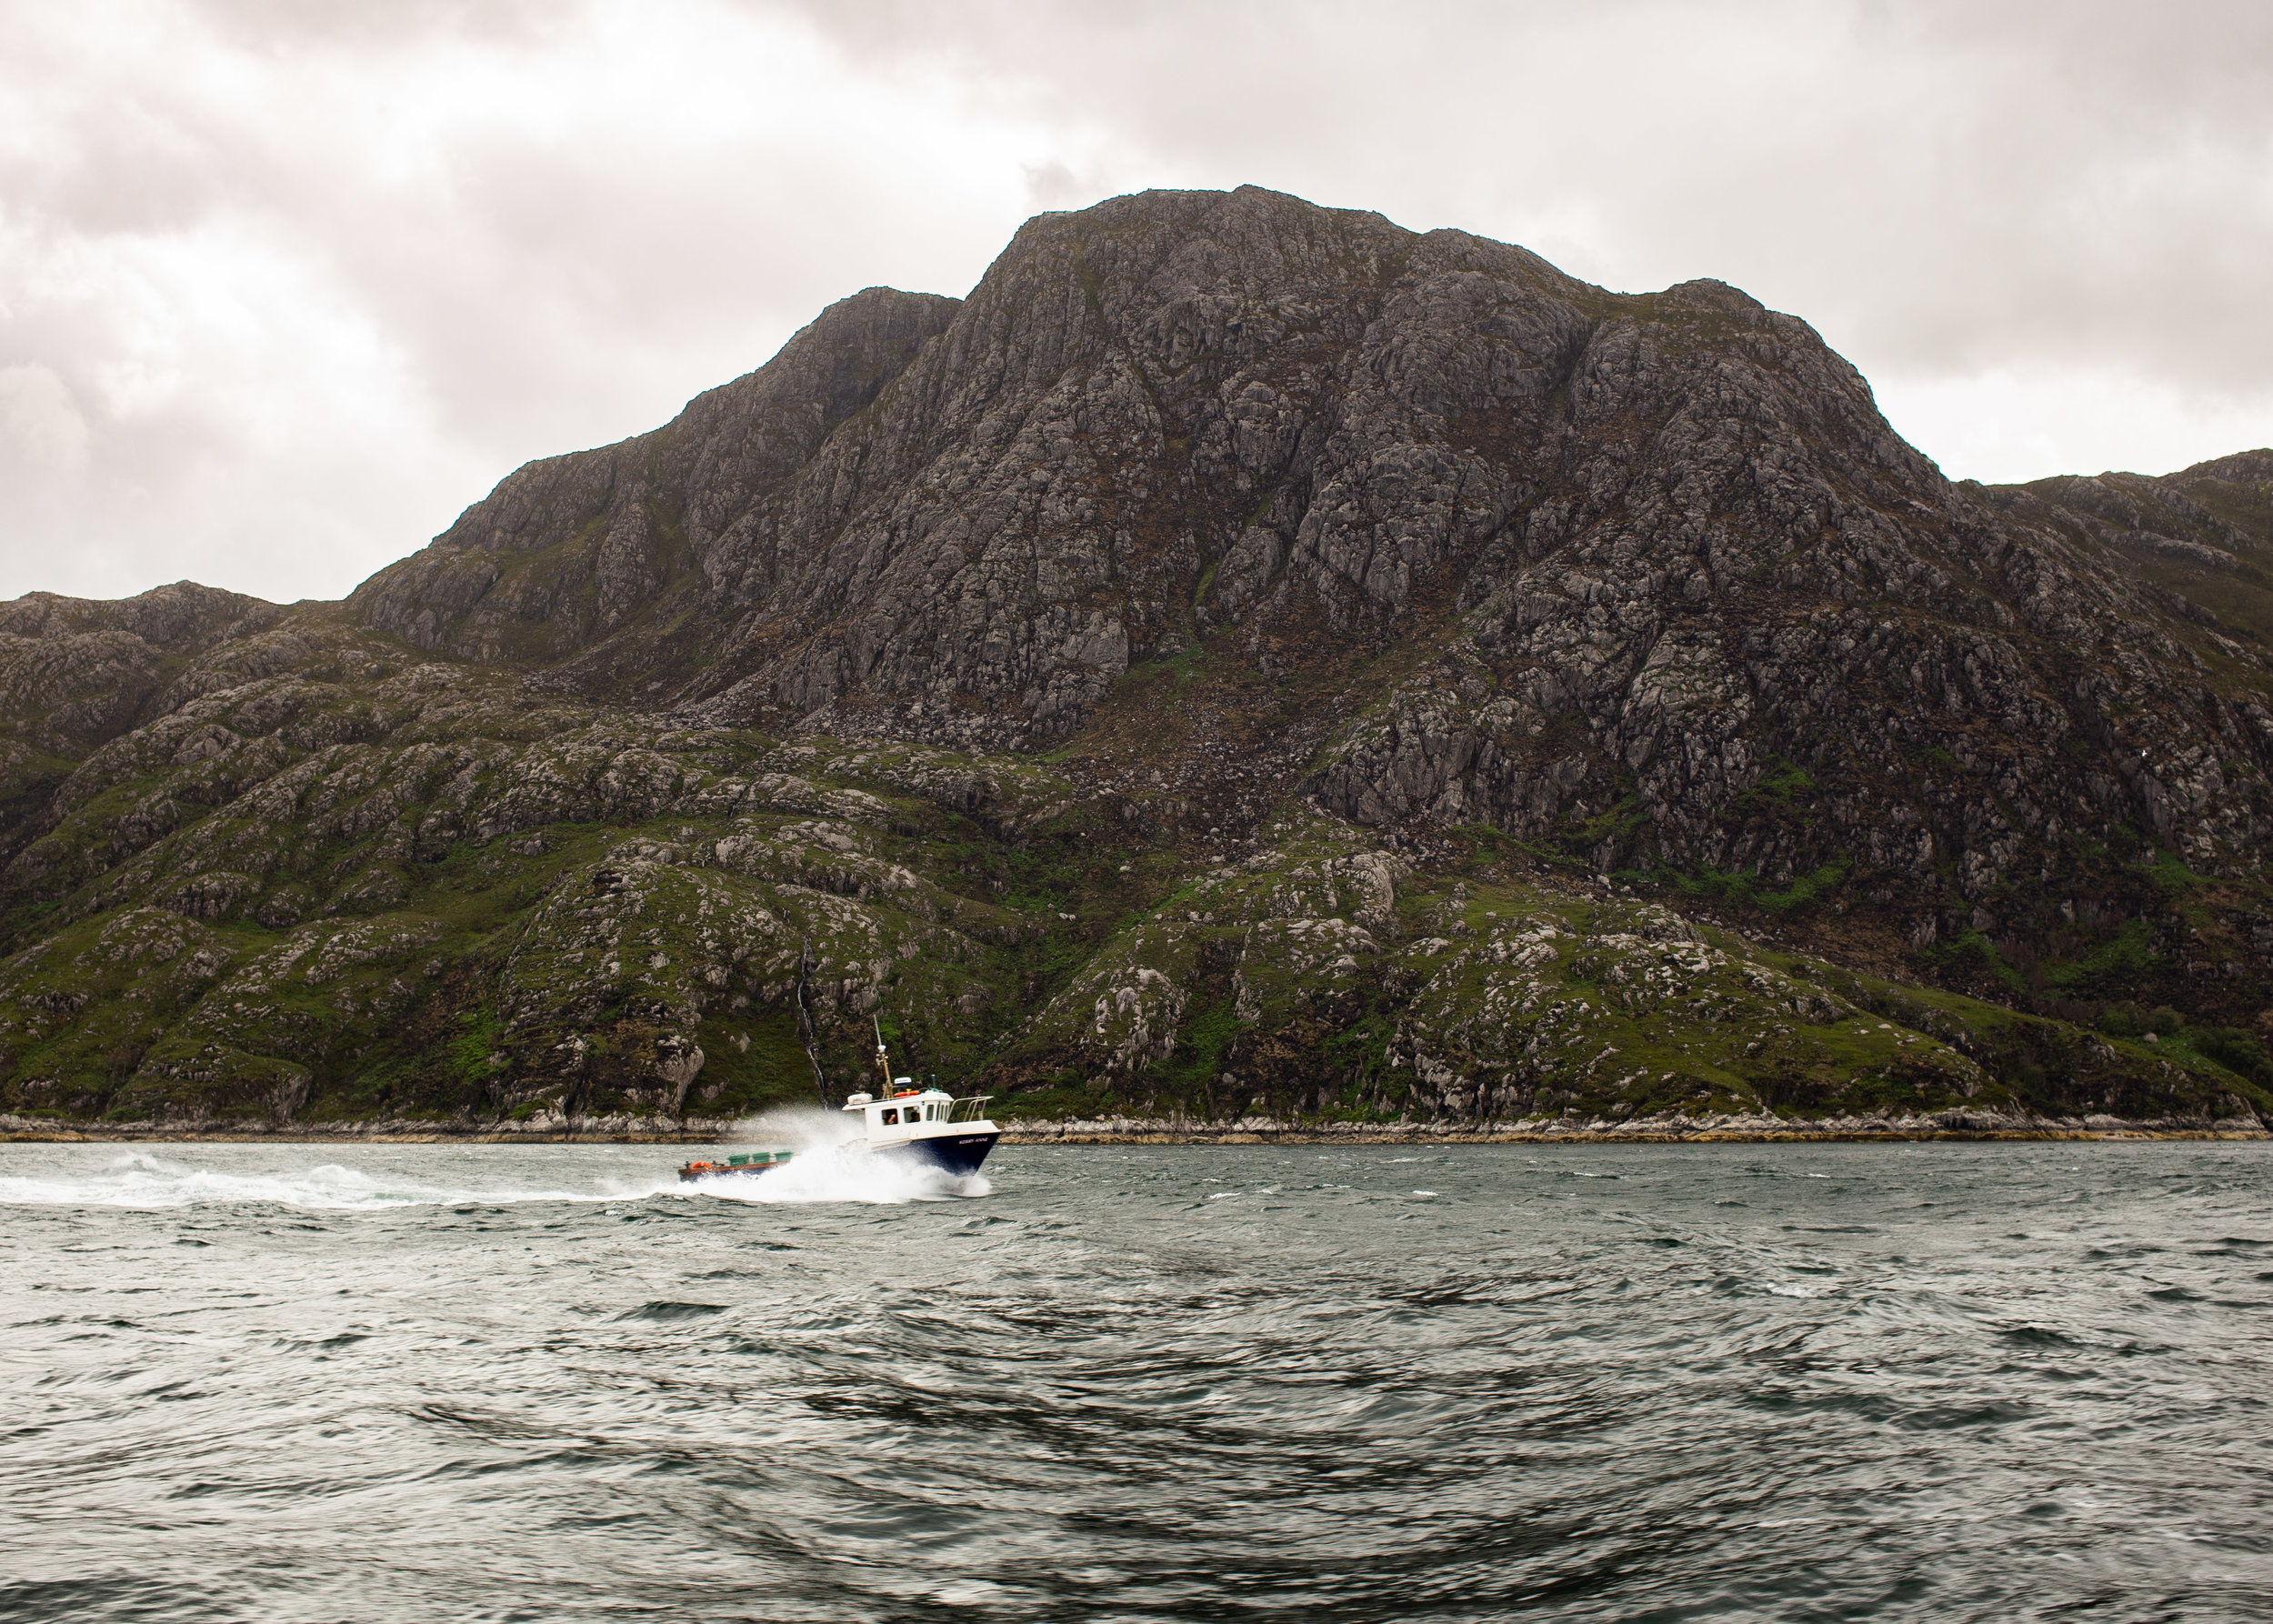 Crossing Loch Nevis from Mallaig to Inverie, Knoydart